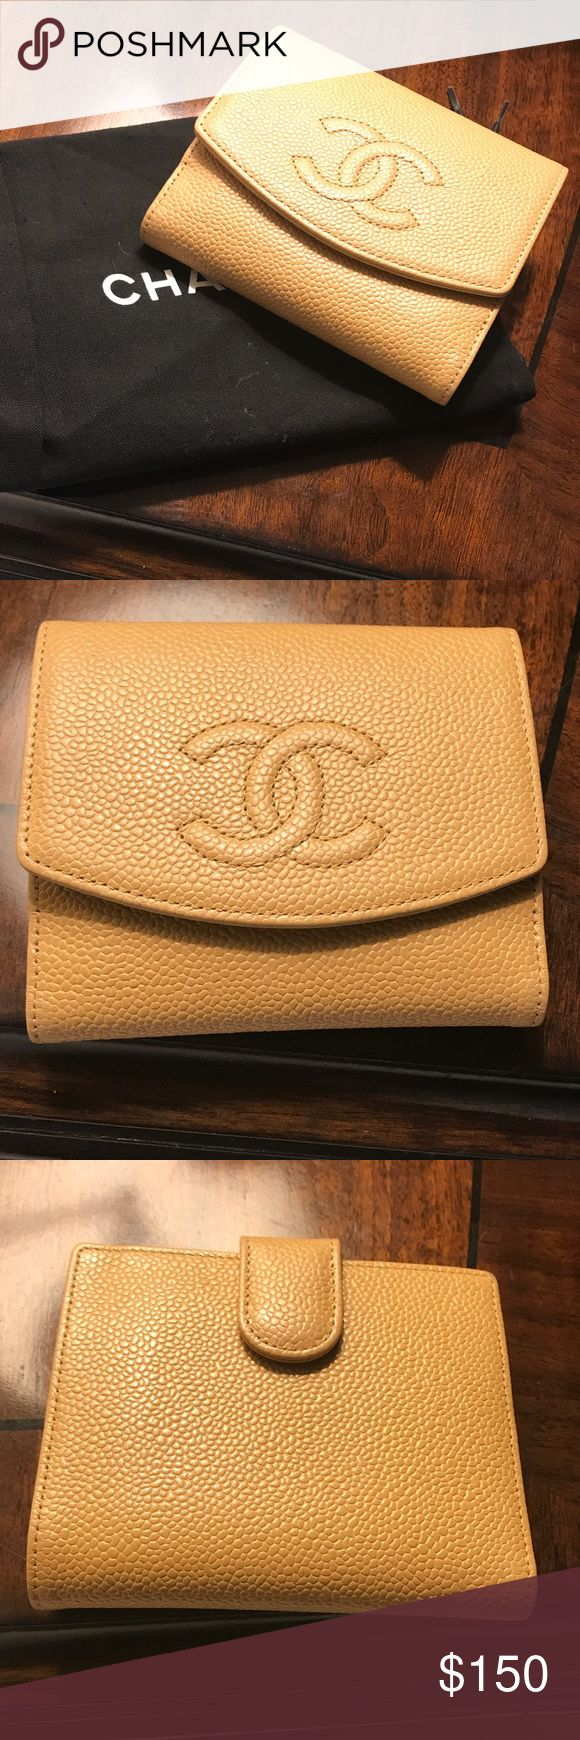 "Chanel Small Wallet Beige Caviar Leather AUTHENTIC Very good condition esp. exterior.Wear inside coin purse & card slots.Very small ink mark on inside edge.I did not keep the authenticity card or box.Chanel hologram & serial number (10373784) inside bill fold.Caviar Leather ""Timeless"" compact wallet;gold-tone hardware,embroidered interlocking CC at front, tonal leather & woven lining,single change compartment at front featuring snap closure,single bill compartment at interior walls,8 card…"